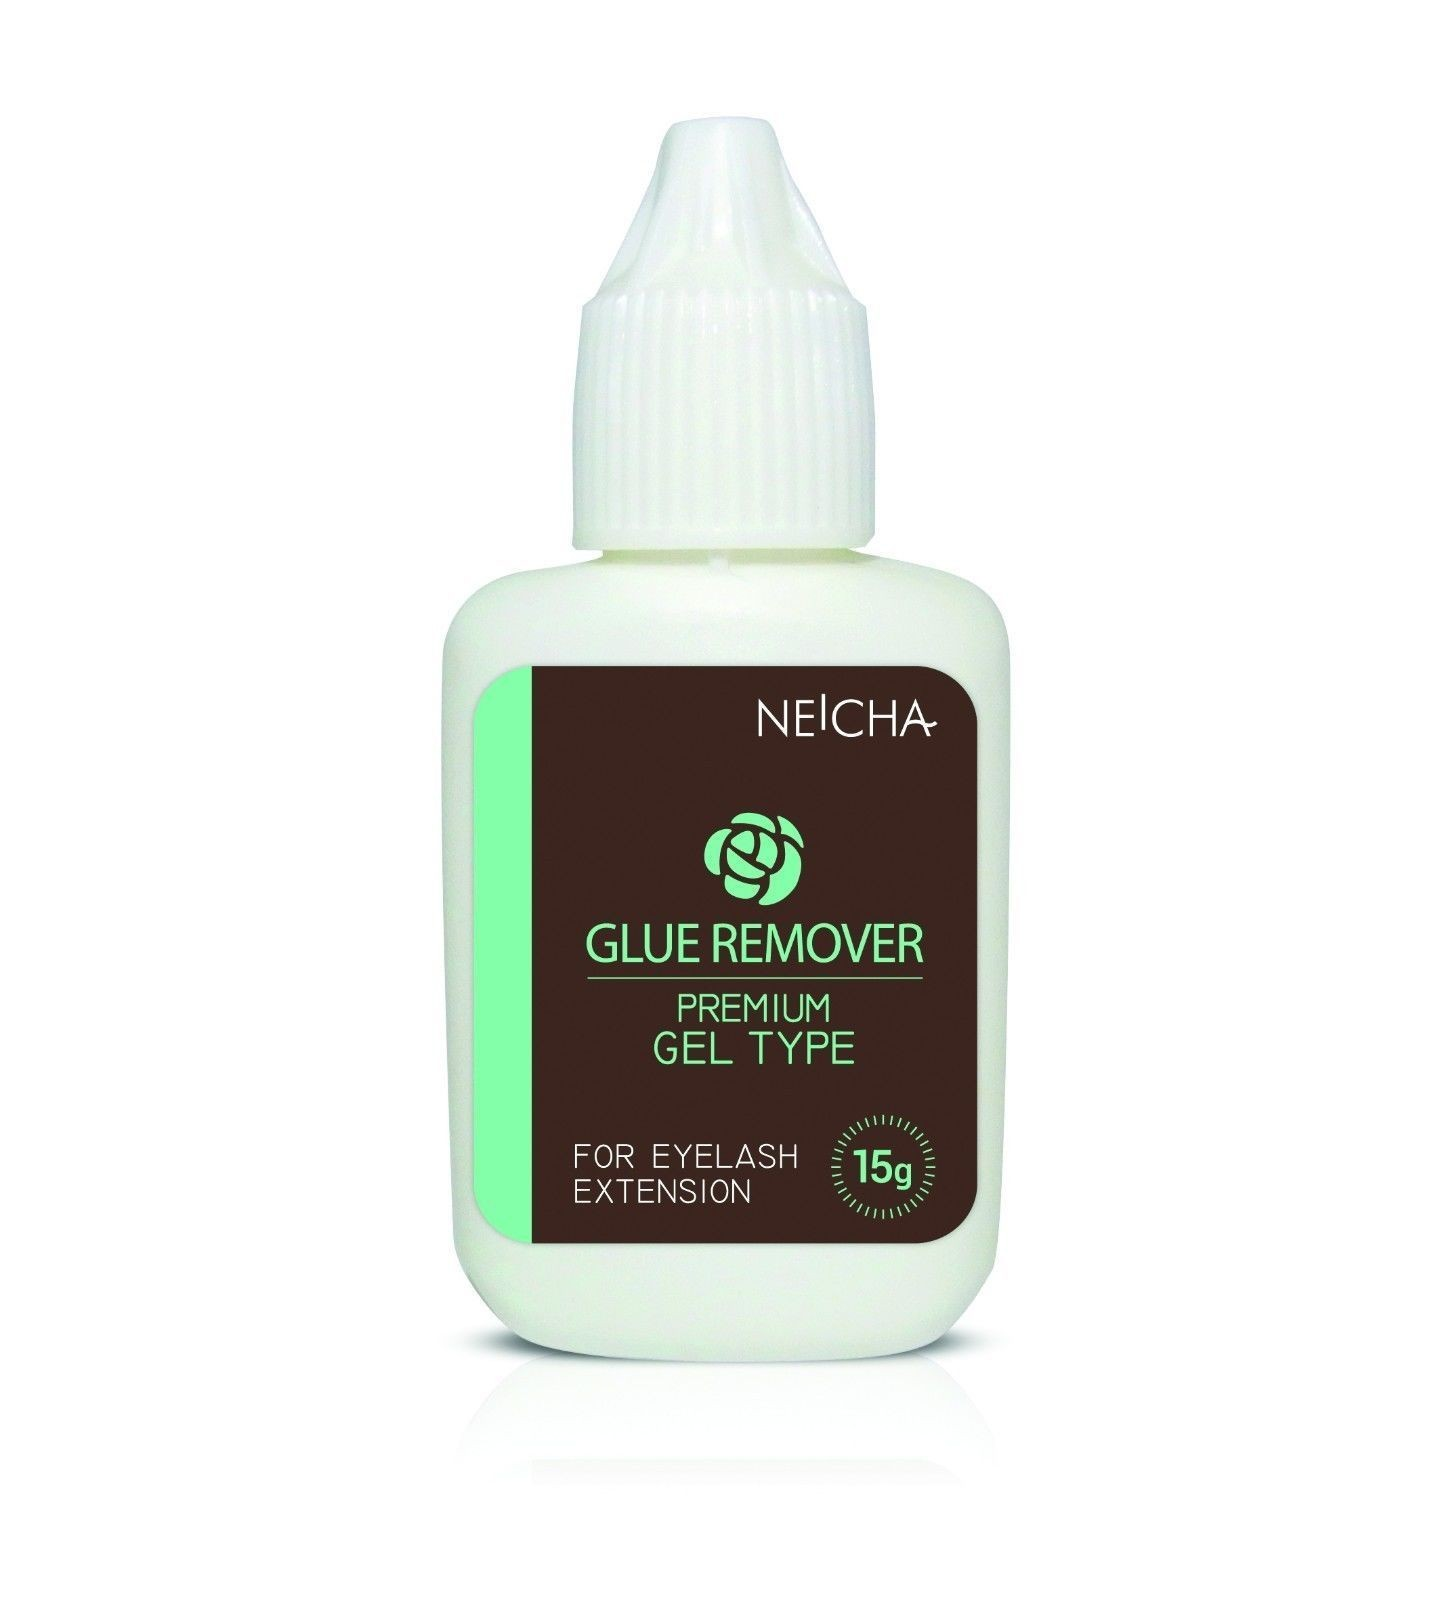 GLUE REMOVER GEL TYPE